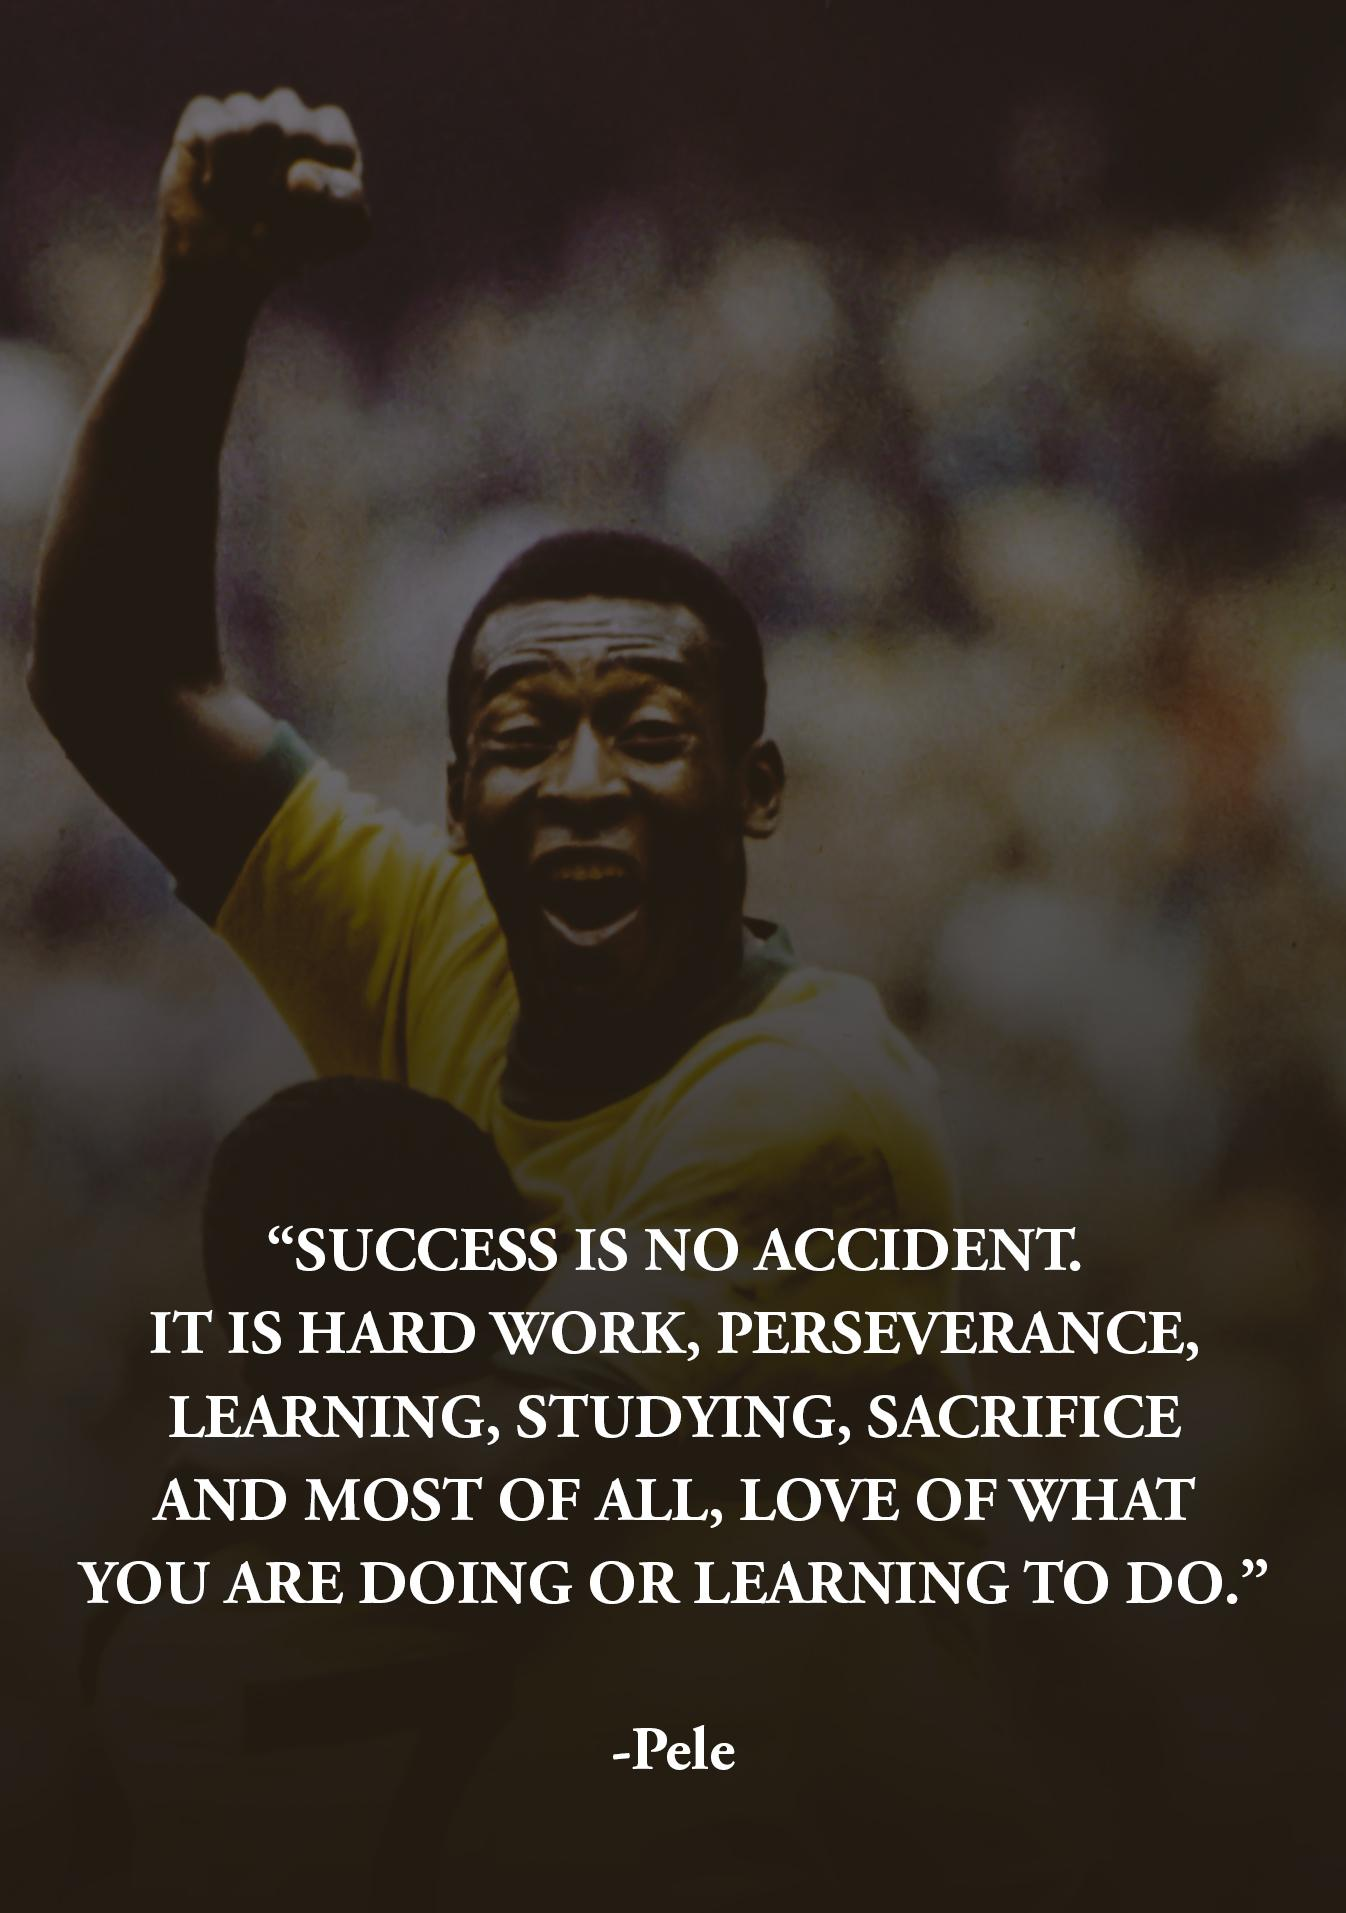 """Success is no accident. It is hard work, perseverance, learning, studying, sacrifice and most of all, love of what you are doing or learning."" -Pele [1346 × 1913]"